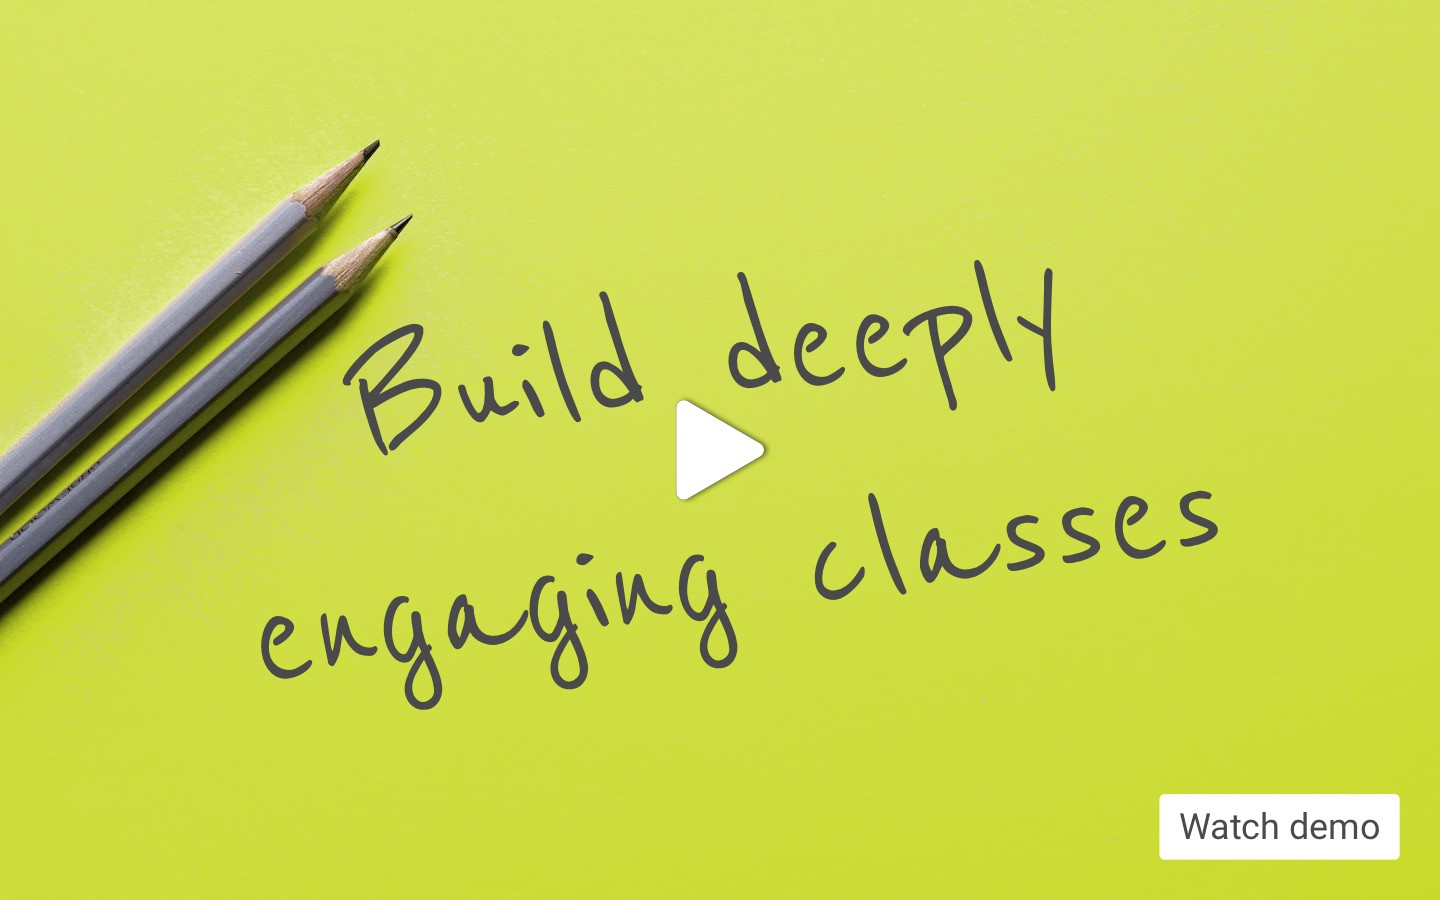 Build deeply engaging classes